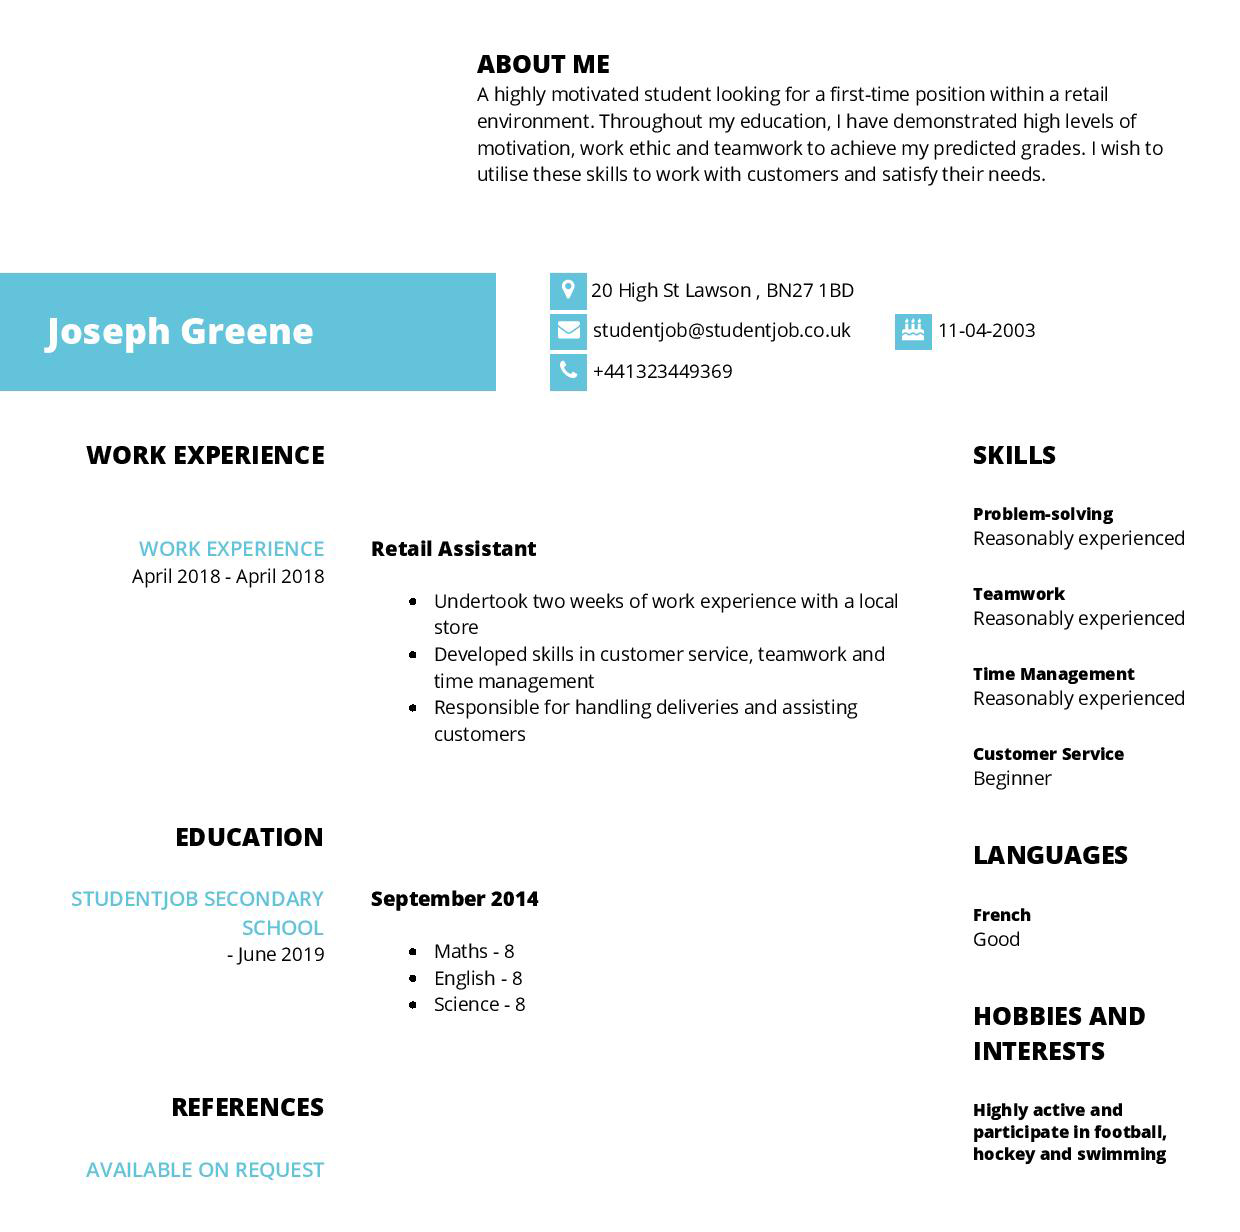 CV Examples And CV Templates | StudentJob UK